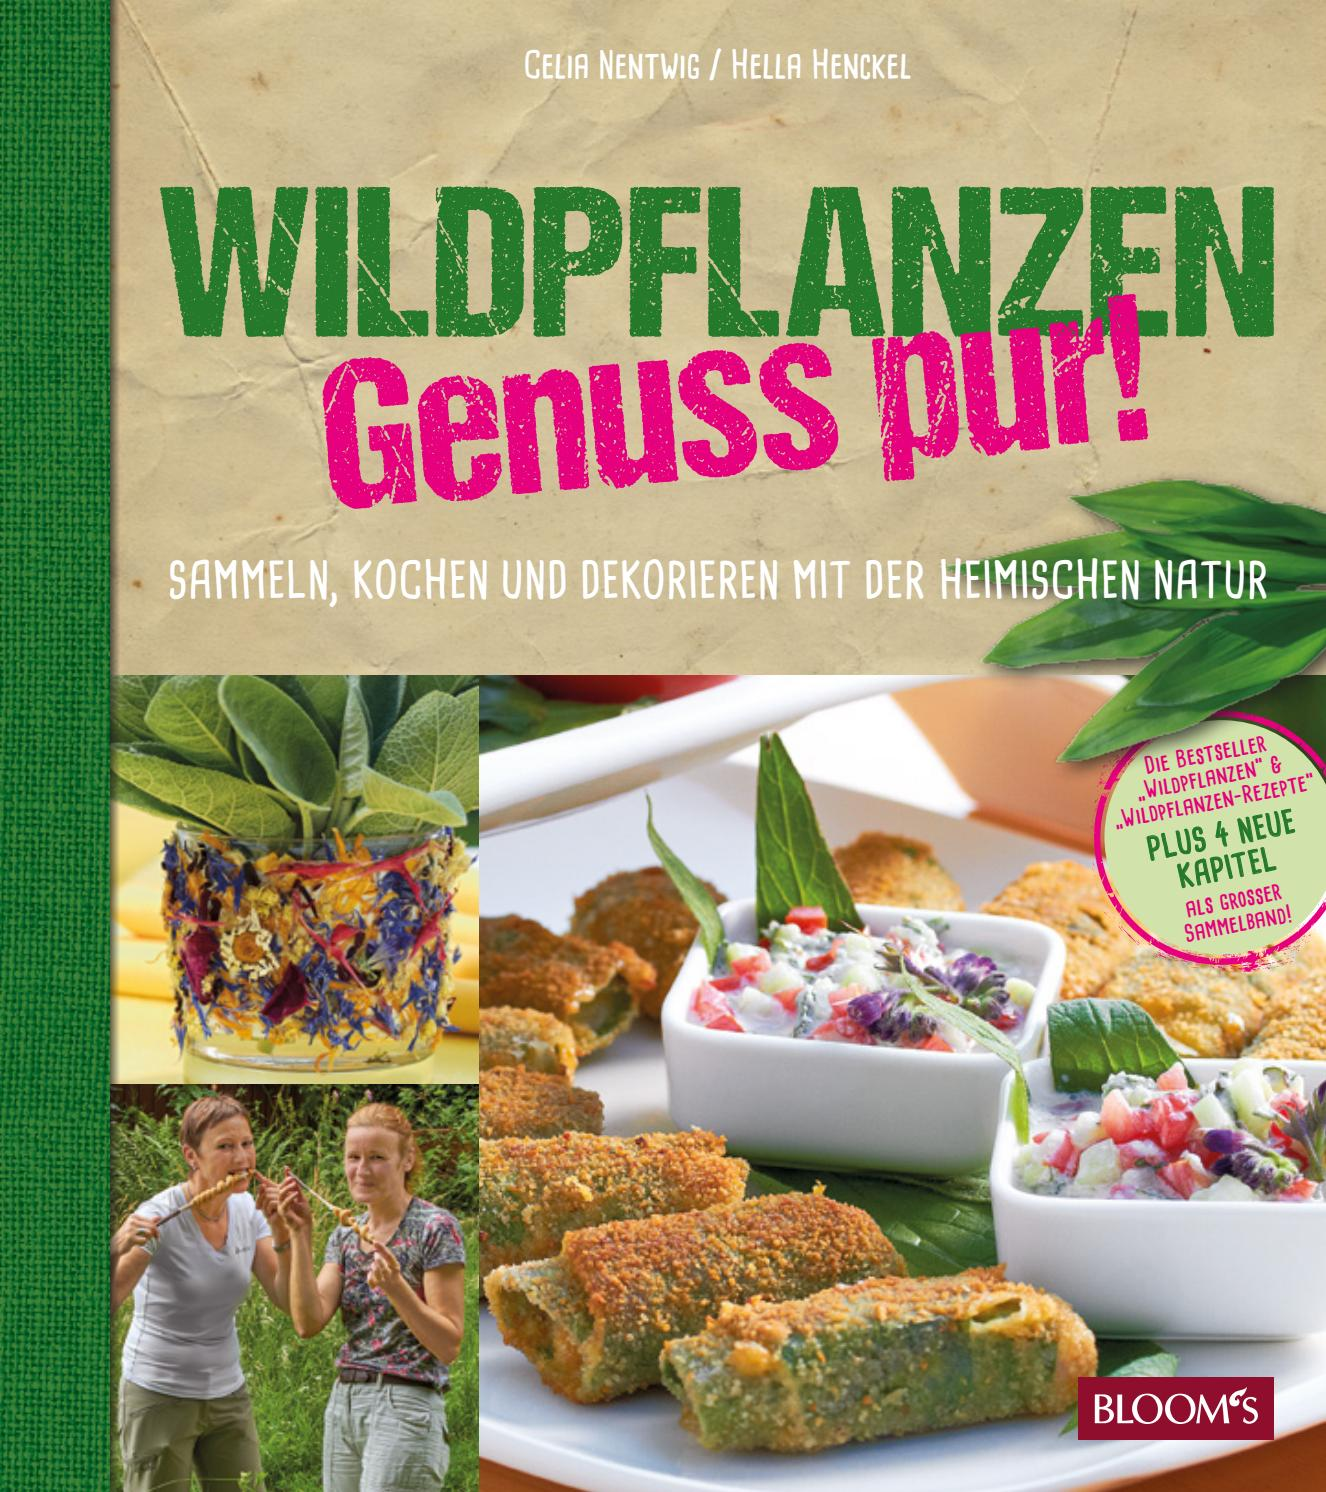 Wildpflanzen - Genuss pur! by BLOOM\'s GmbH - issuu